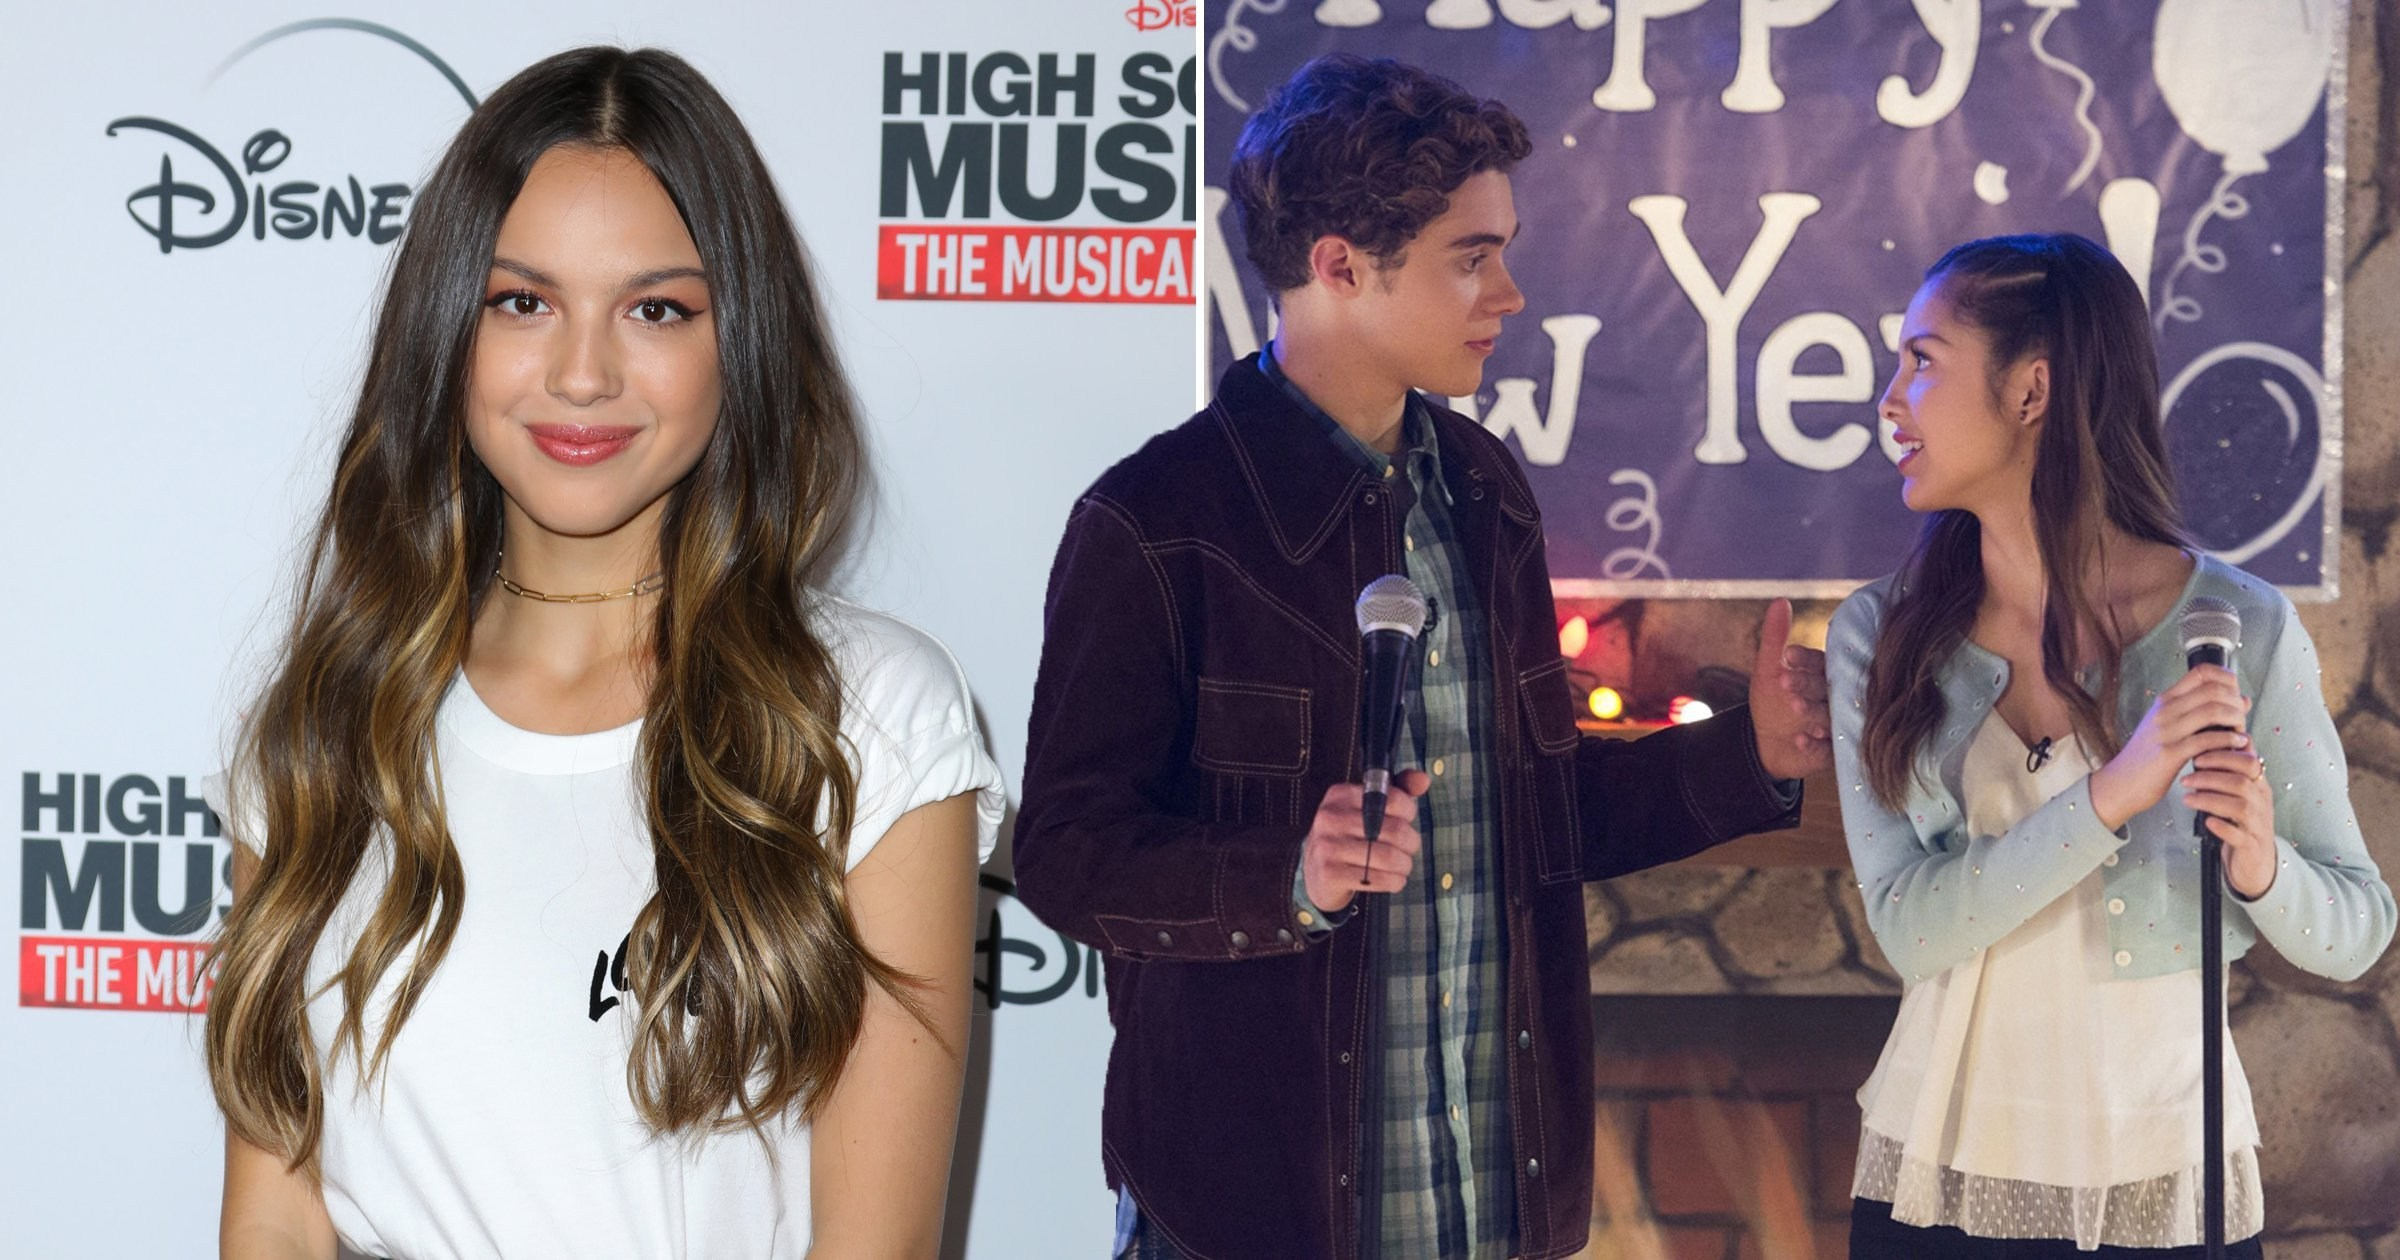 Who is Drivers License singer Olivia Rodrigo? Meet the High School Musical: The Musical: The Series star